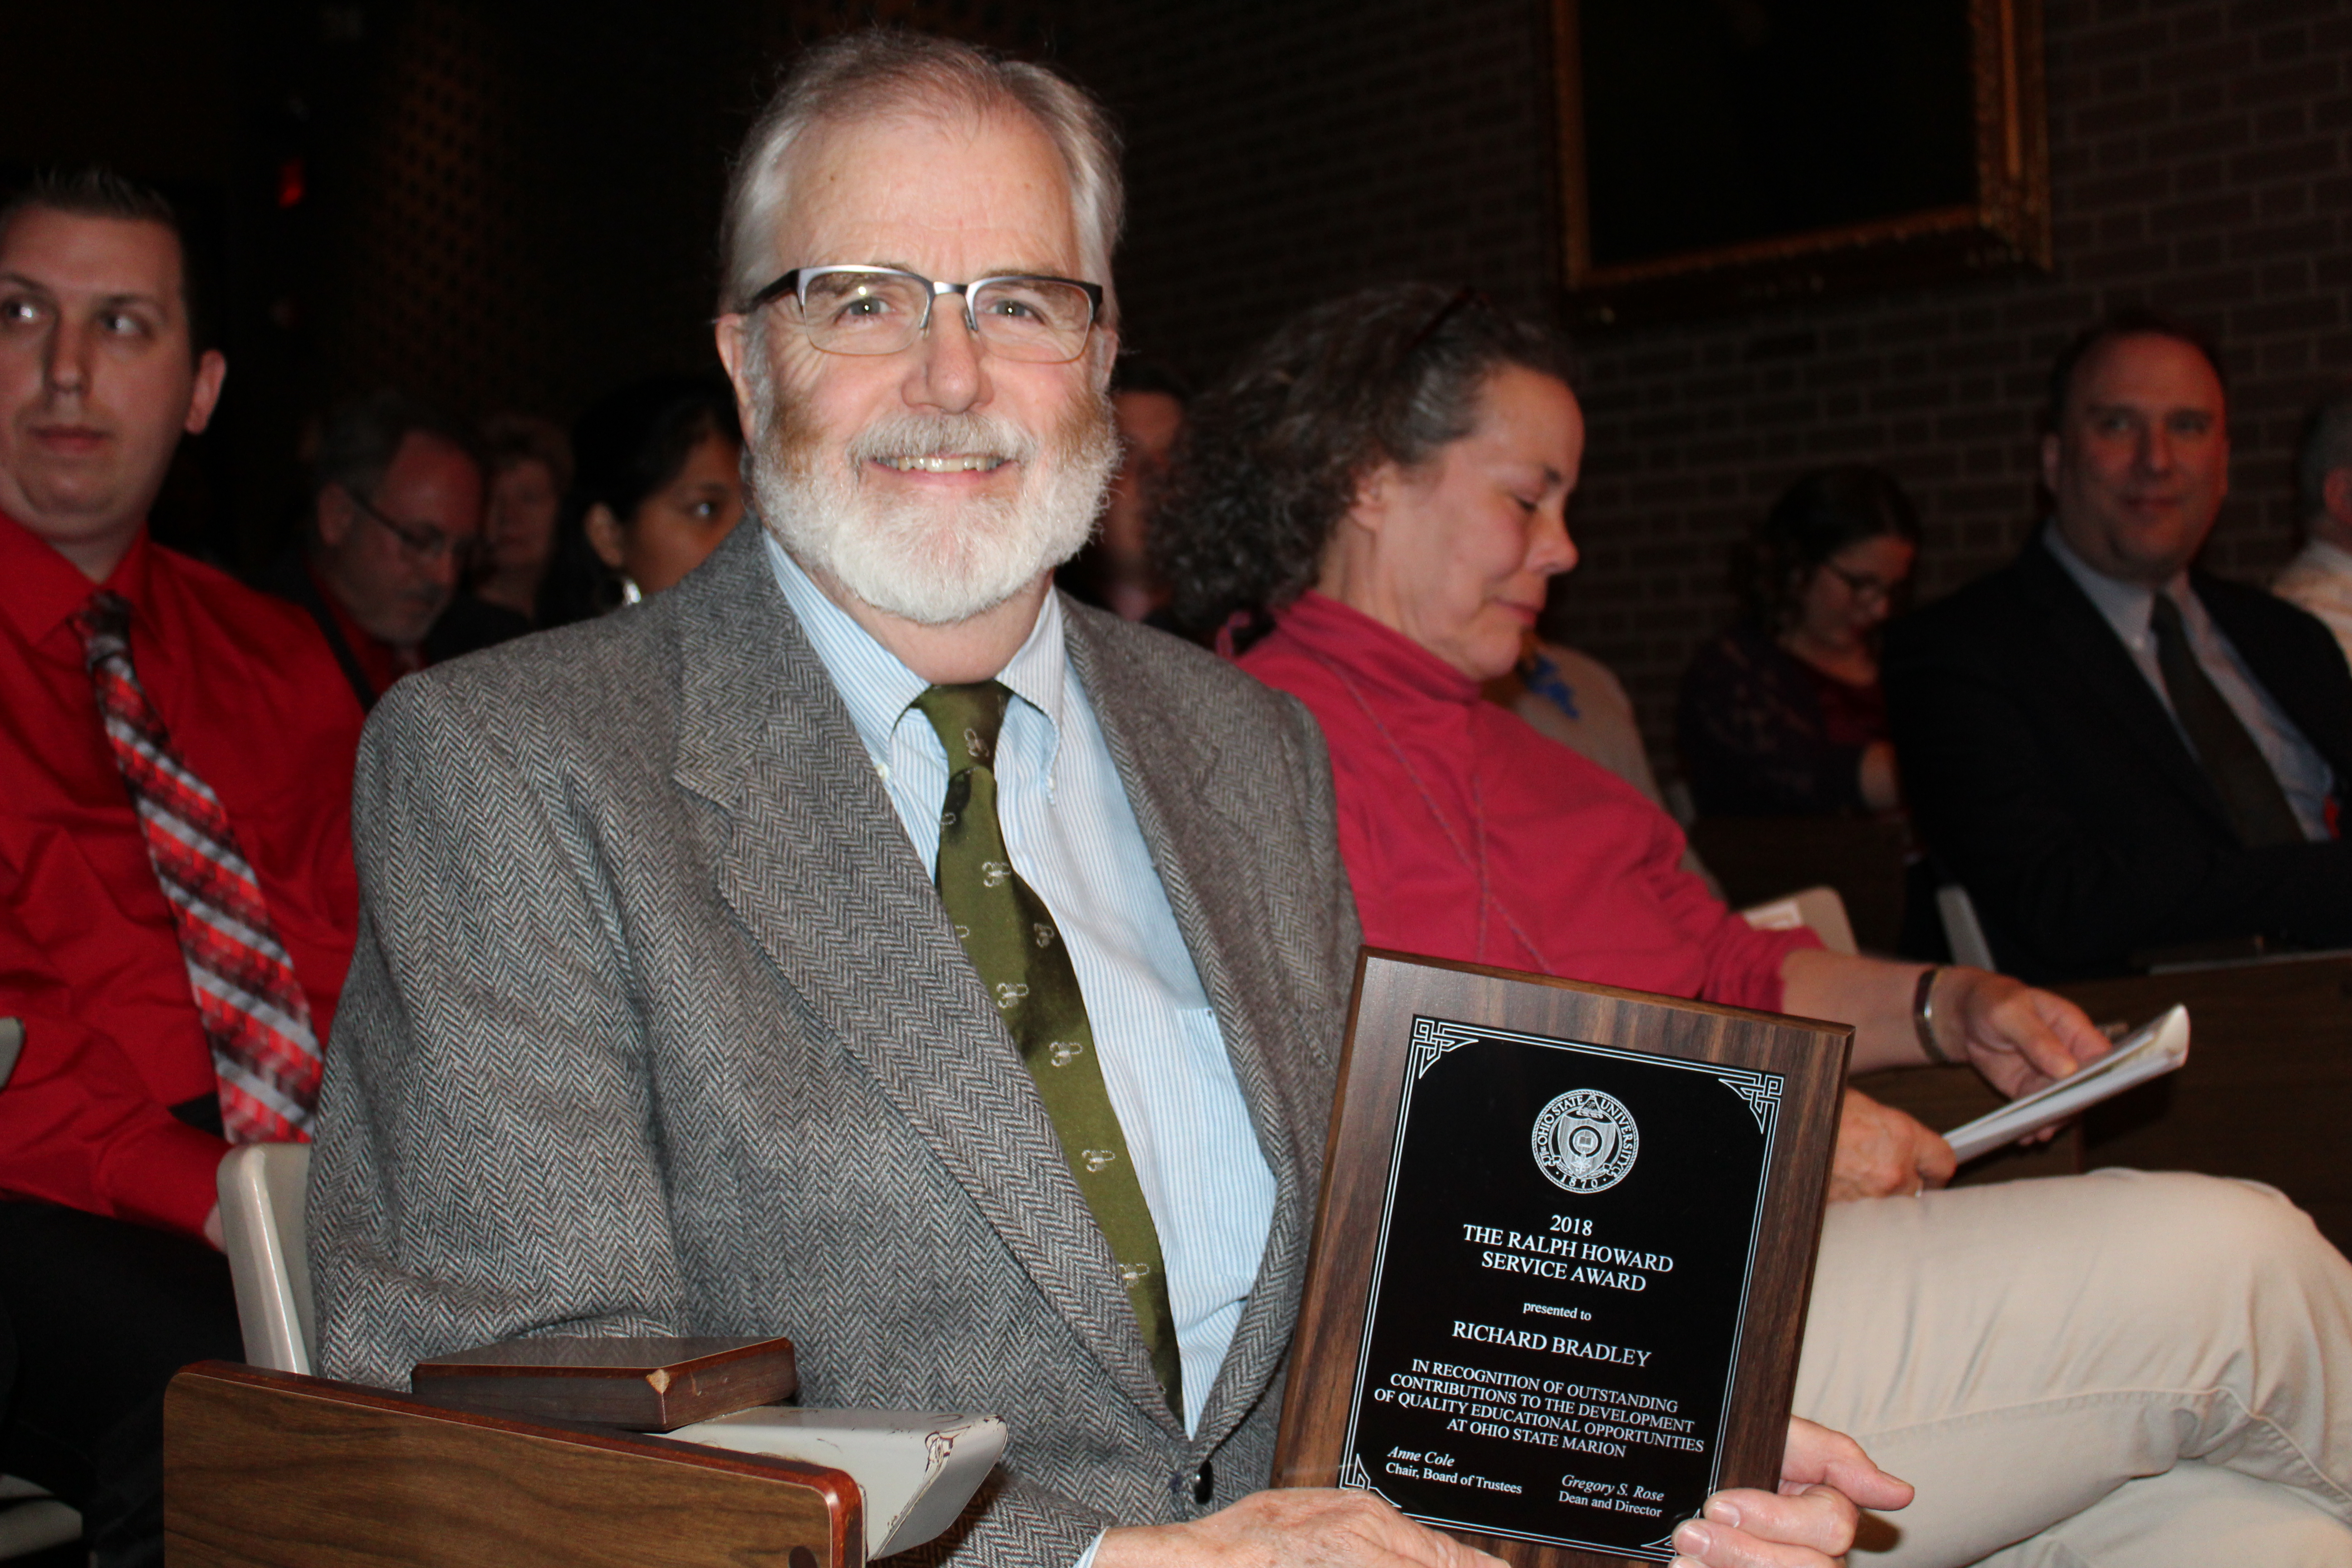 2018 recipient Dr. Rich Bradley - The Ralph Howard Service Award is presented annually by the Marion Campus Board of Trustees to an individual member of the community, or an organization, that has contributed to the development of the academic program and has made a significant impact on the quality of education at The Ohio State University at Marion.